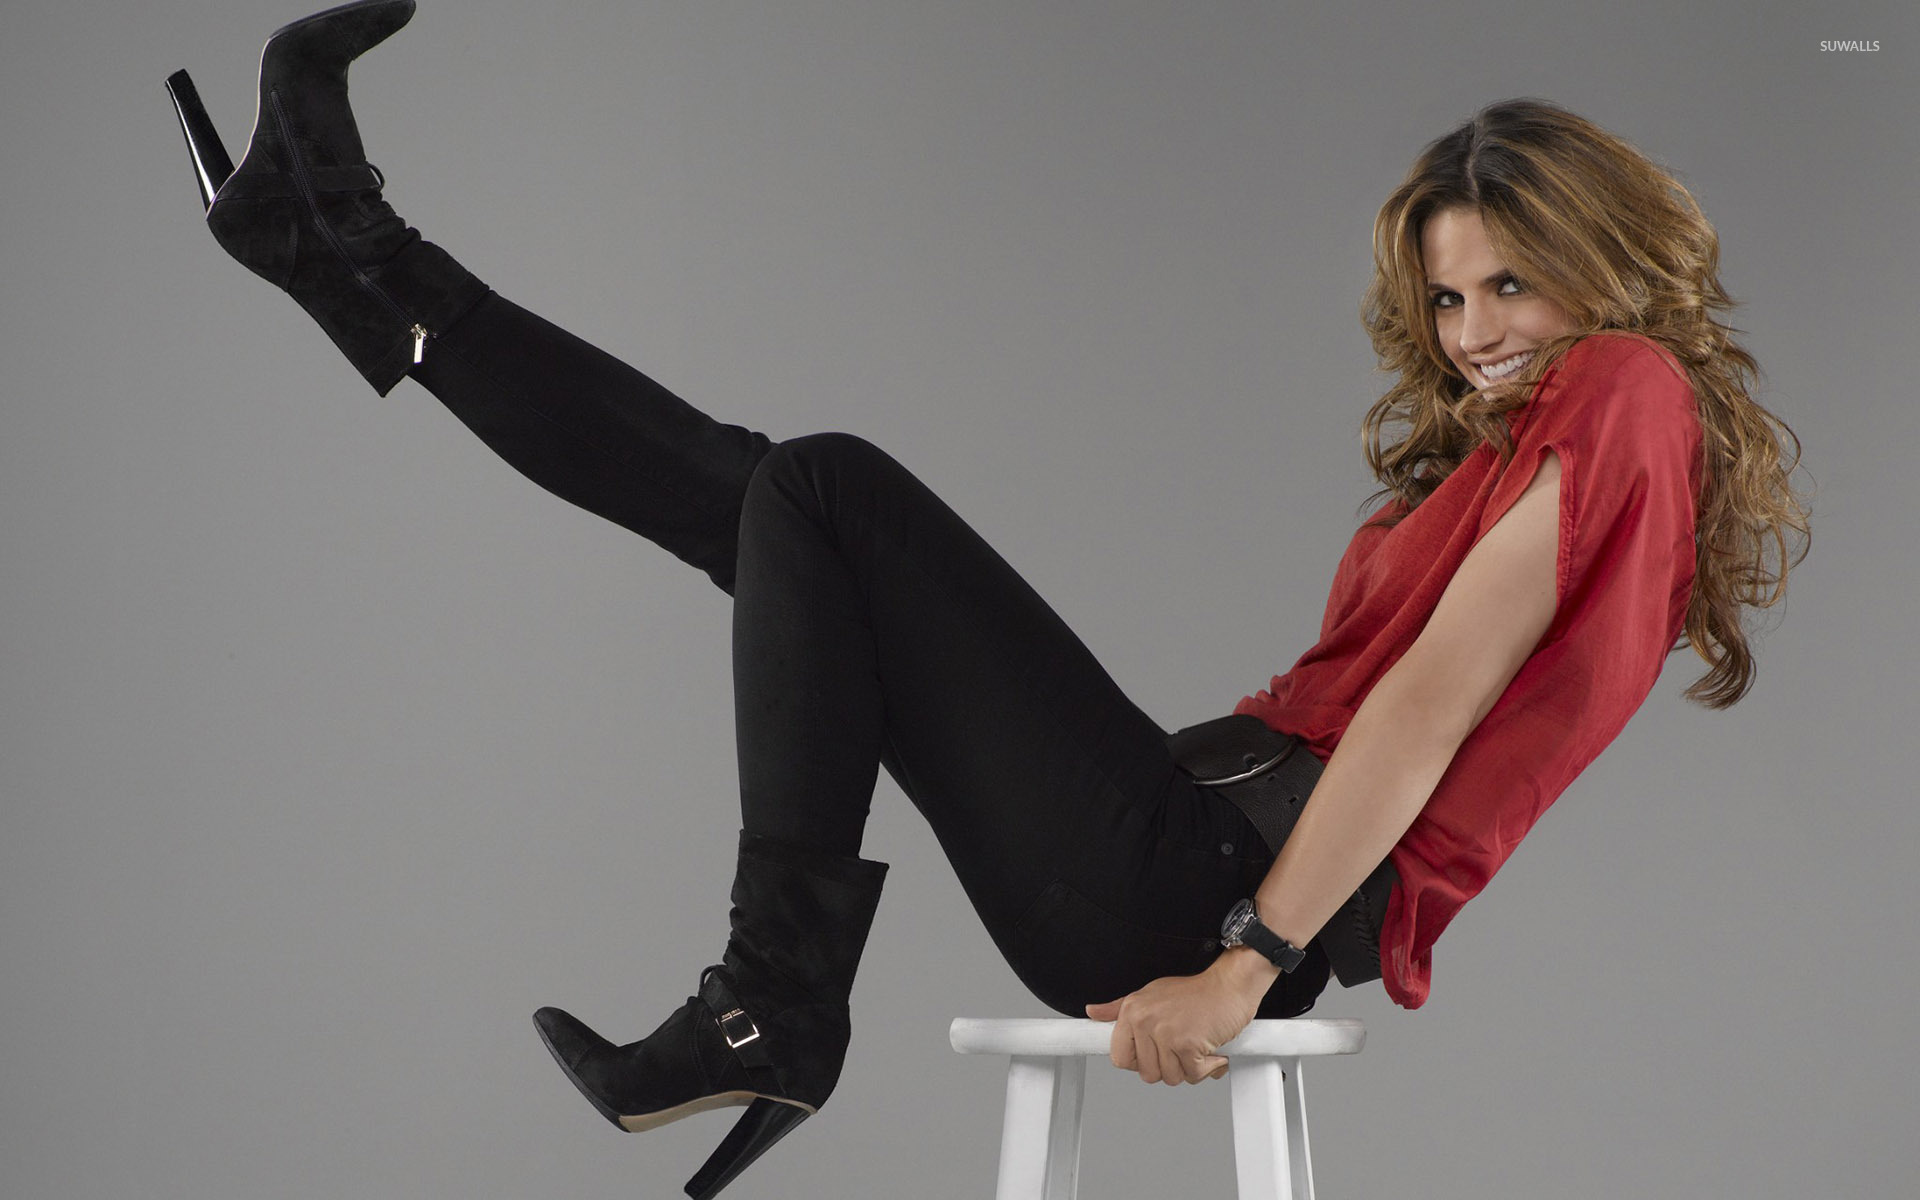 Celebrites Stana Katic nude (92 photos), Ass, Hot, Instagram, bra 2015